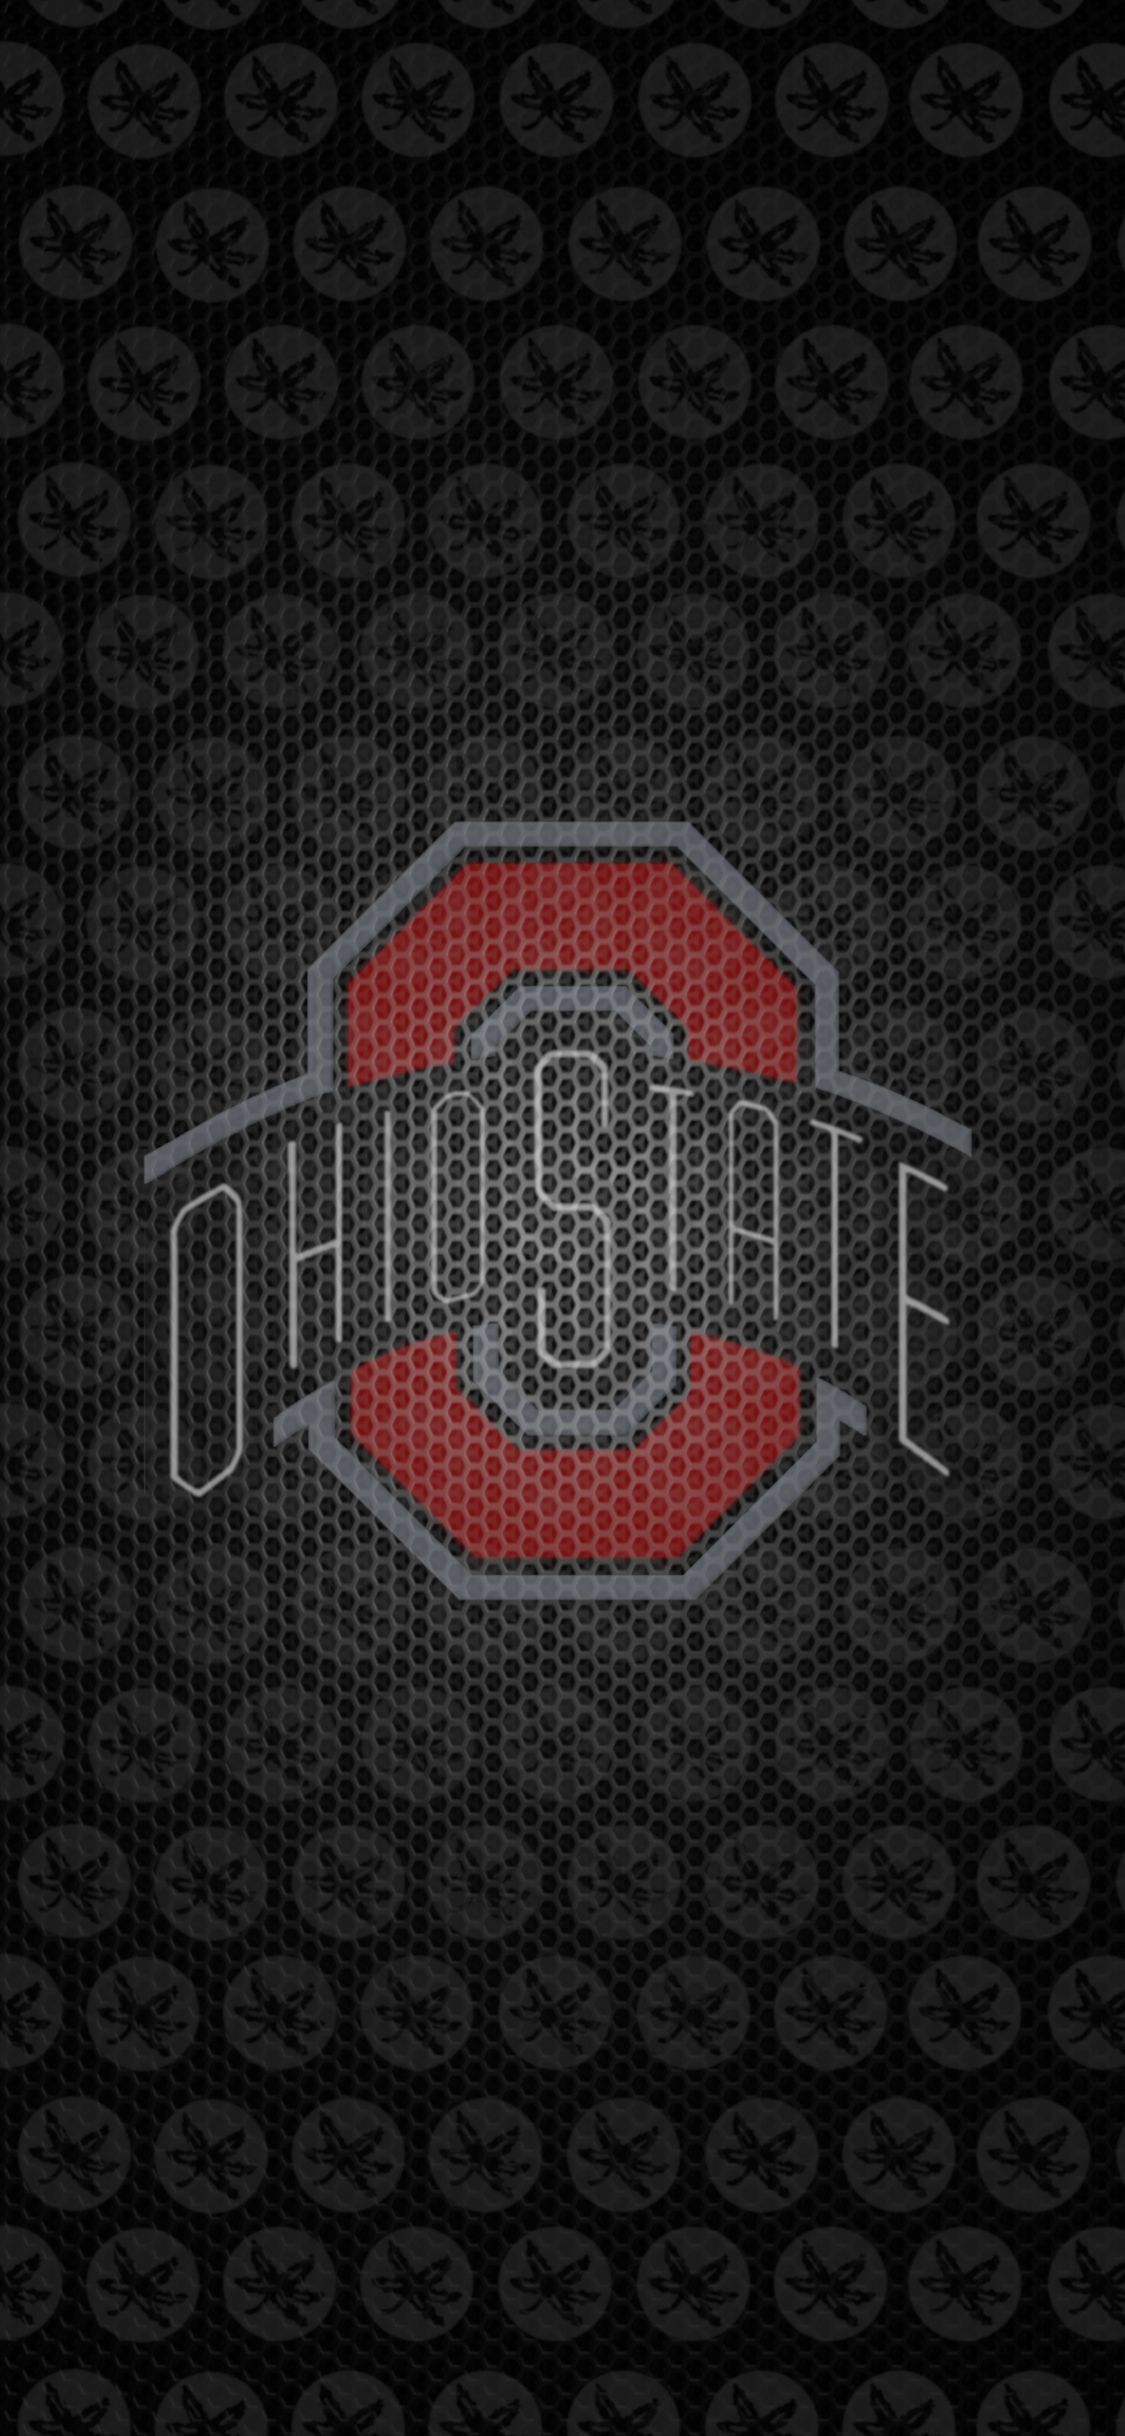 OSU Wallpaper 1050 For iPhone Xs | OHIO STATE PHONE